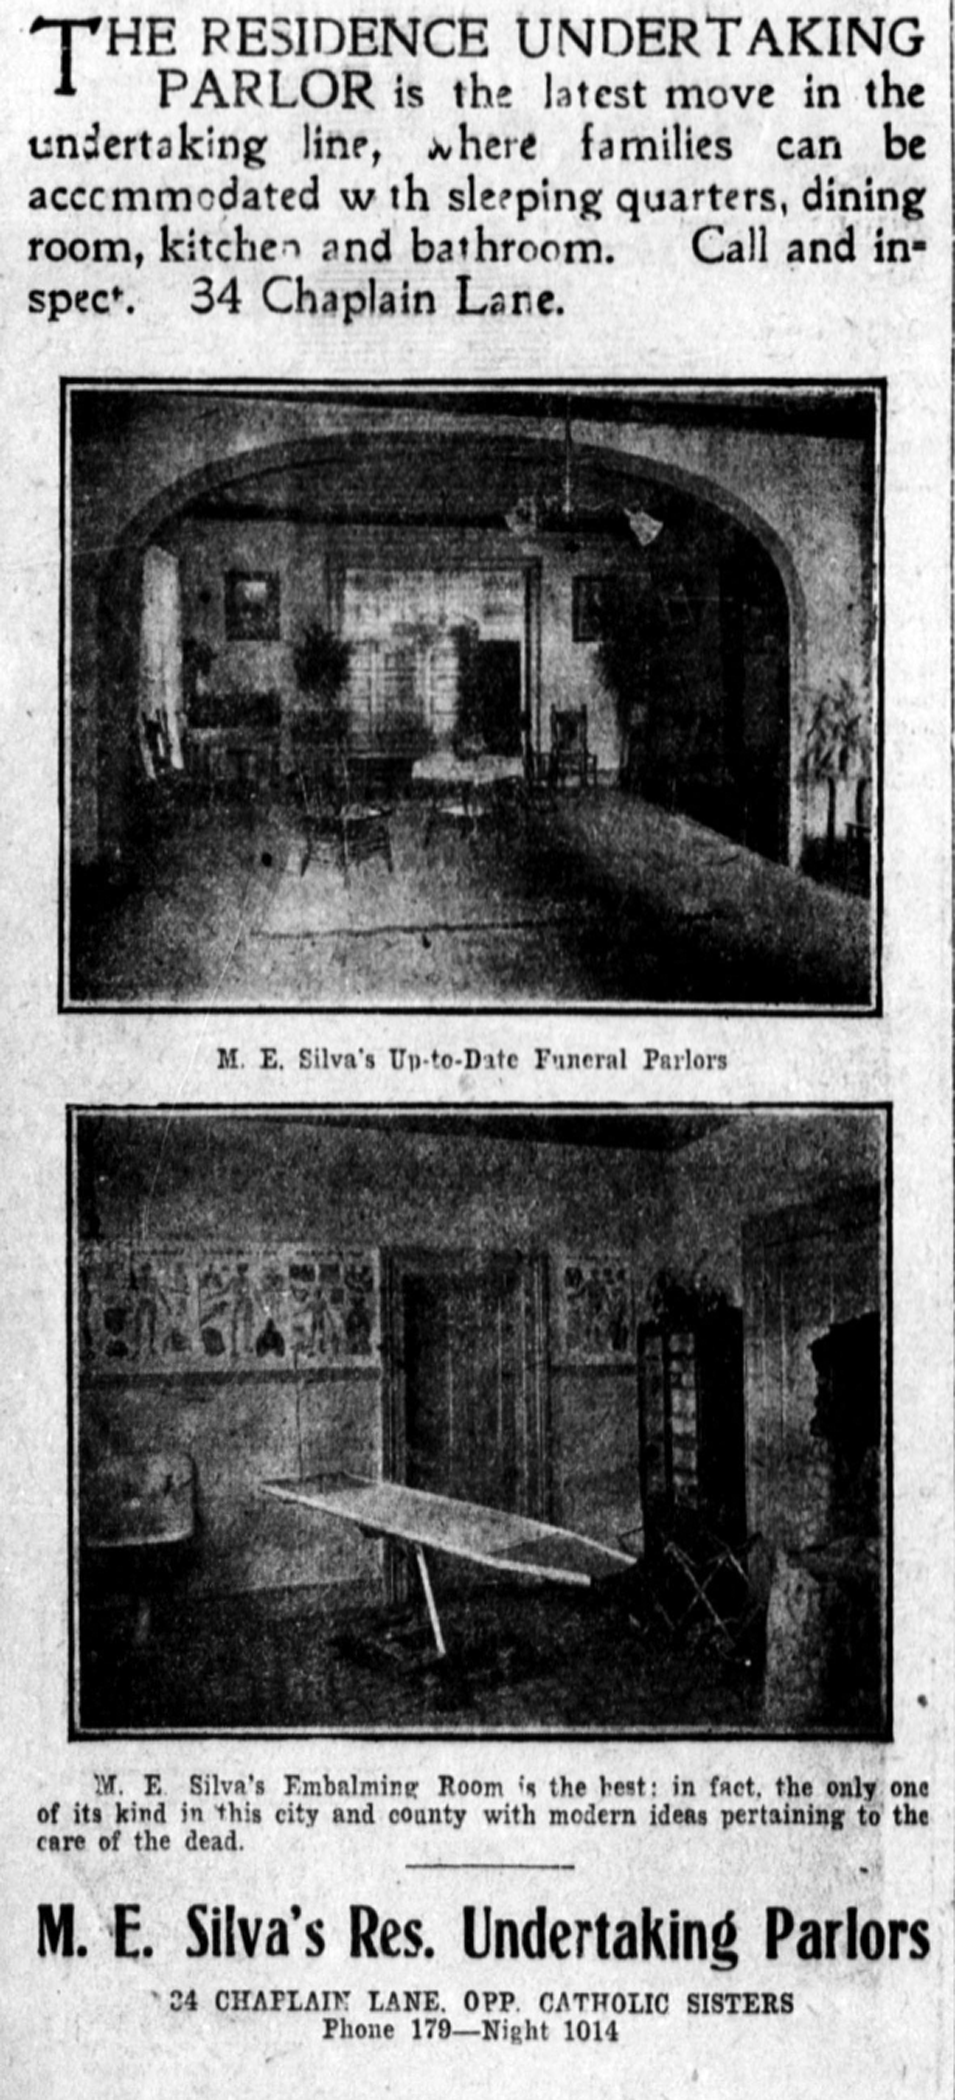 THE RESIDENCE UNDERTAKING PARLOR...